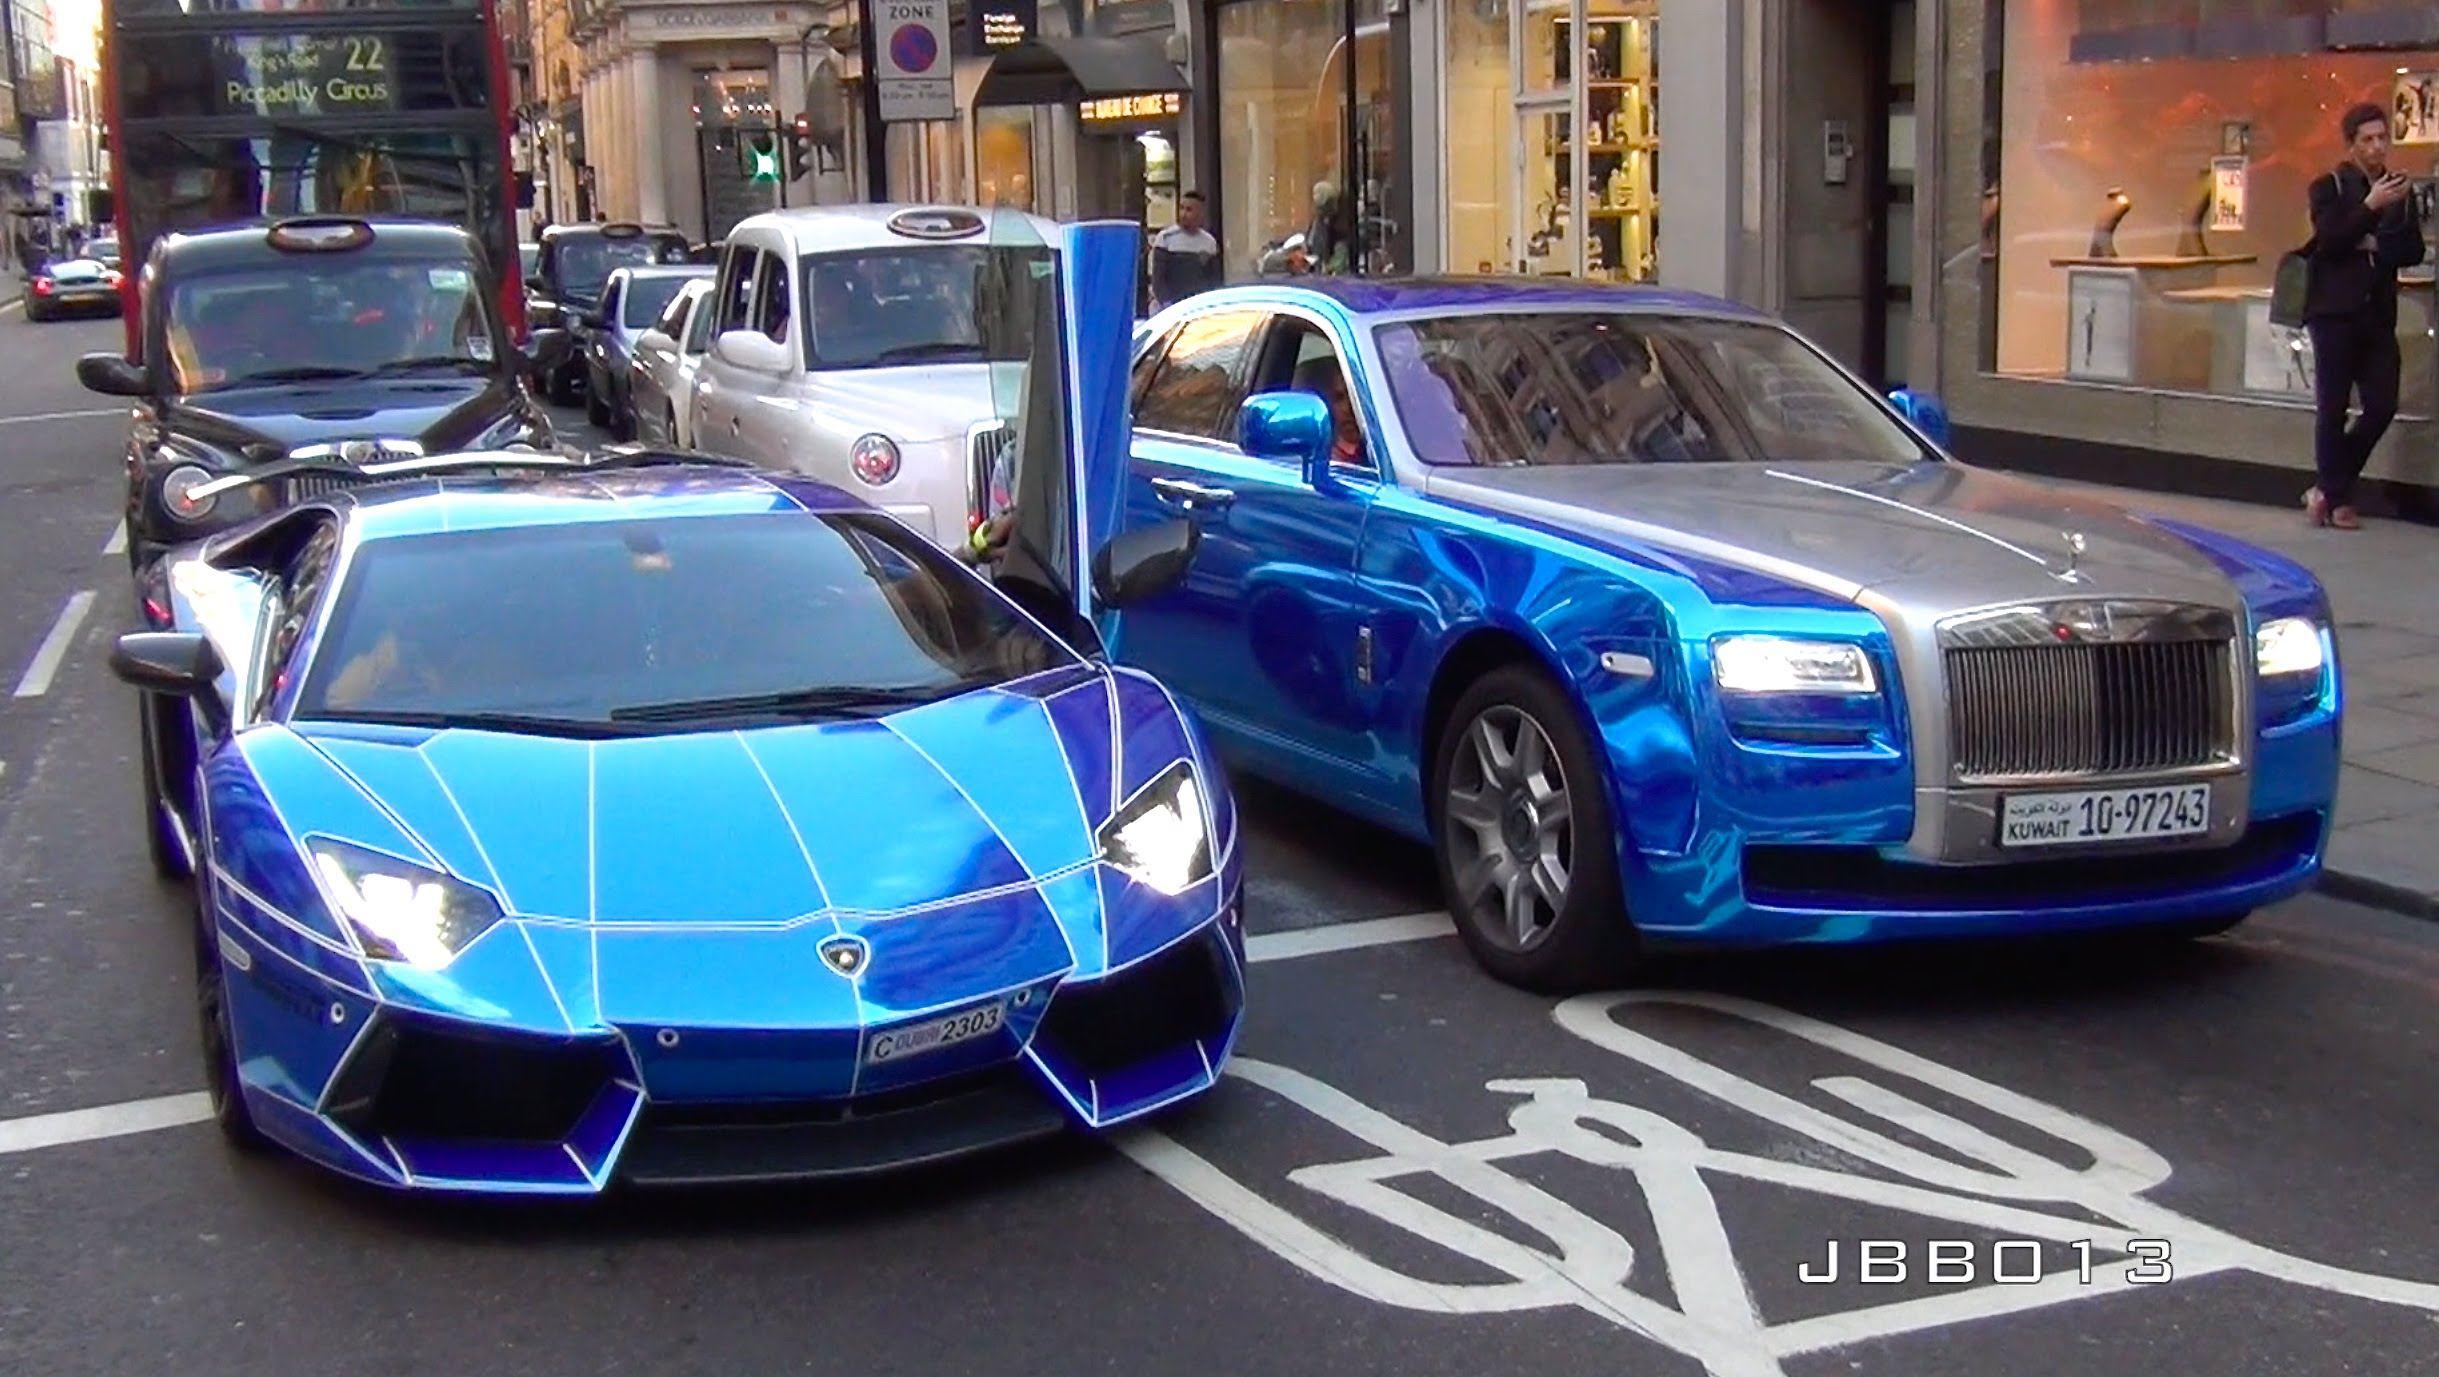 Invasion Car Show >> Incredible Arabian Supercar Crusade In London Is Taking Over United Kingdom, Hide The Kids